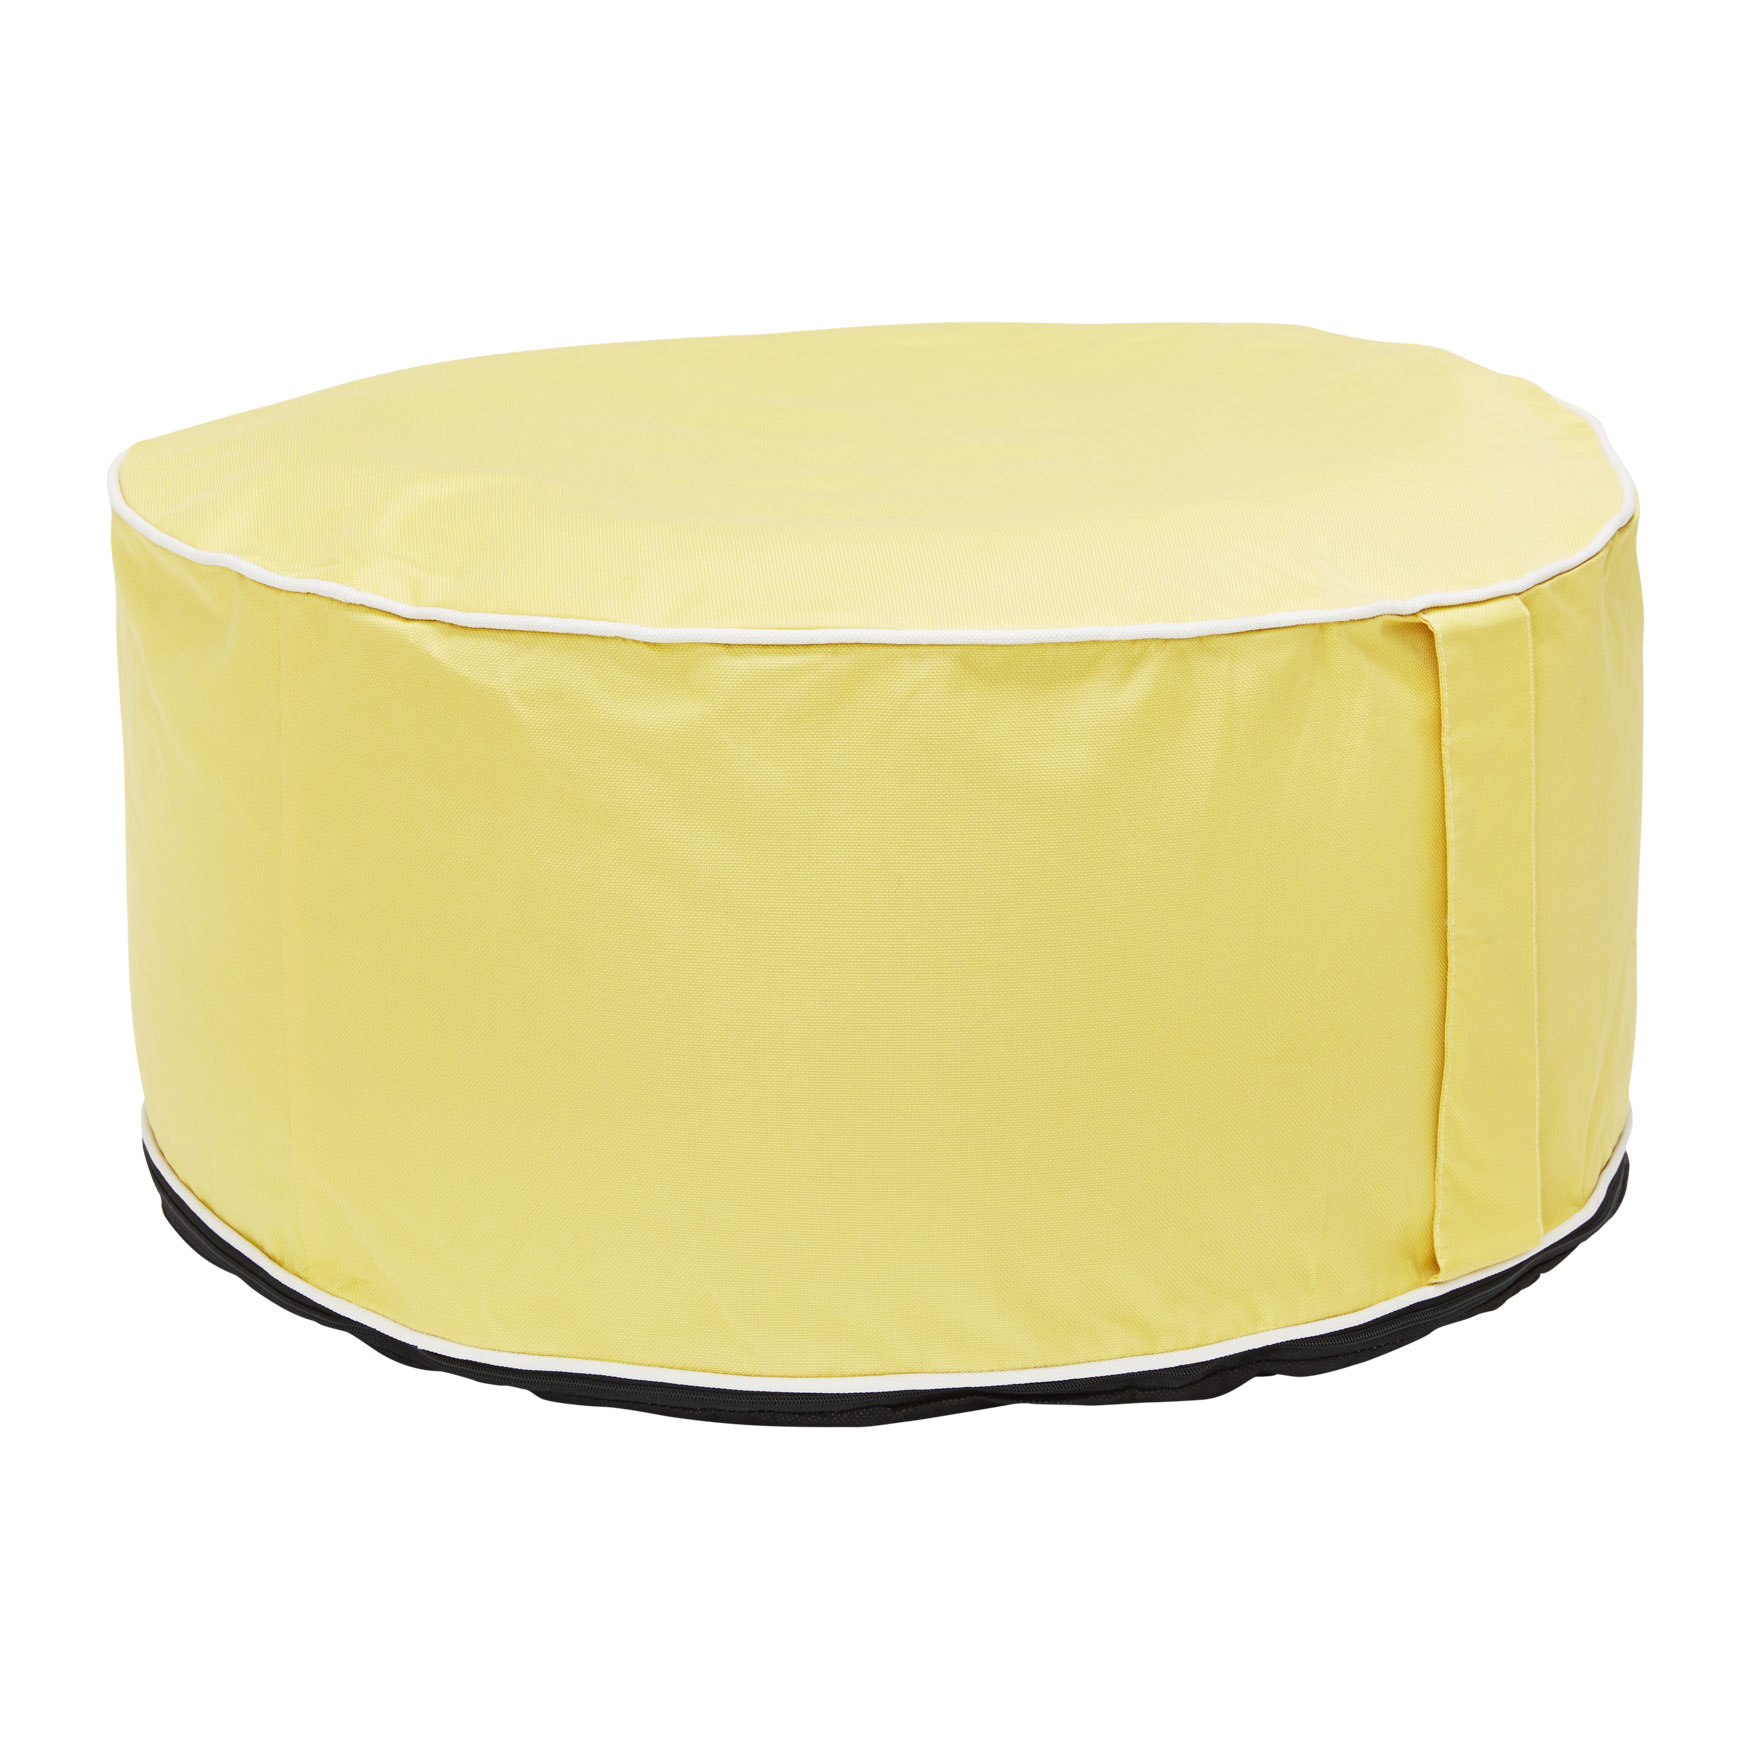 Splash N' Dash Inflatable Pouf, YELLOW